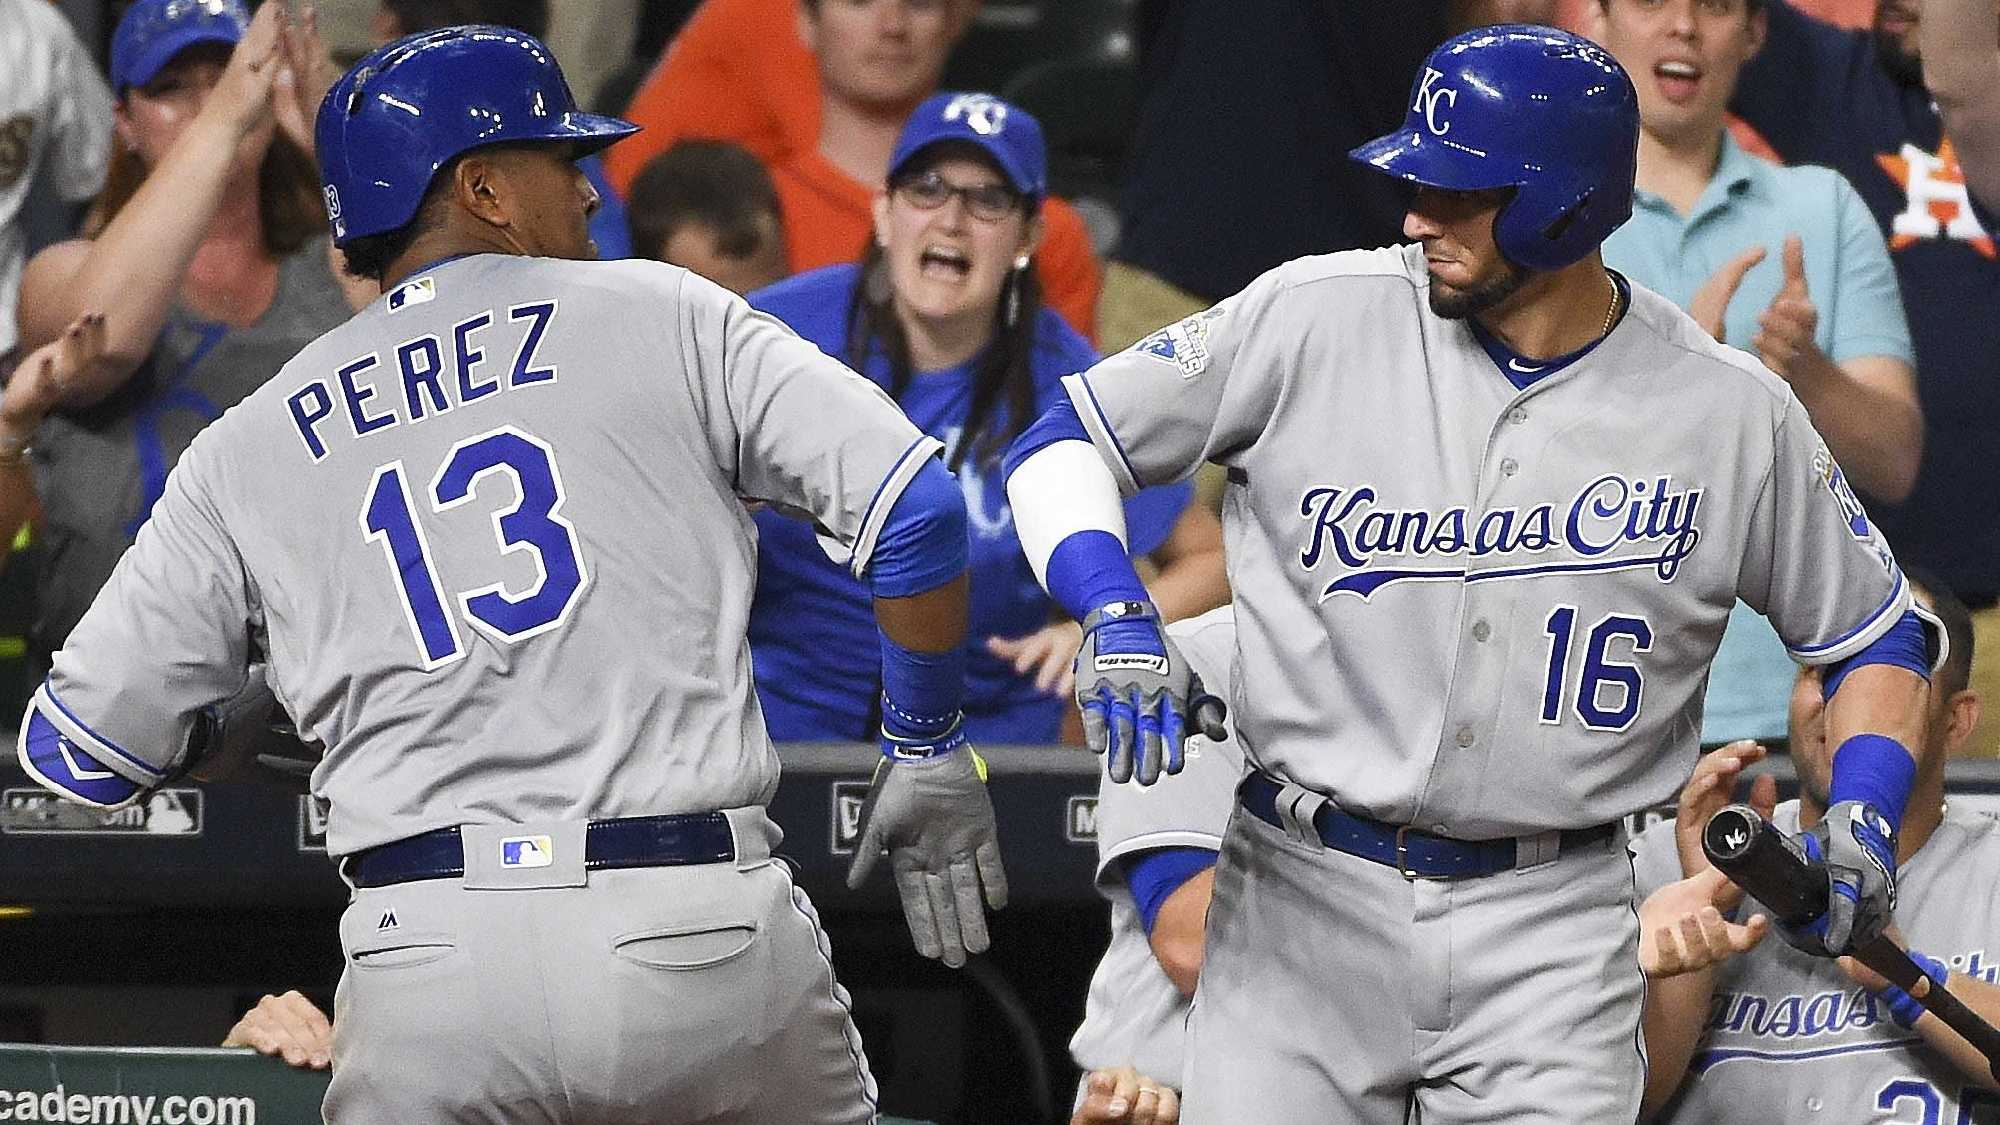 Kansas City Royals' Salvador Perez (13) celebrates his two-run home run with Paul Orlando (16) in the eighth inning of a baseball game against the Houston Astros, Wednesday, April 13, 2016, in Houston. (AP Photo/Eric Christian Smith)